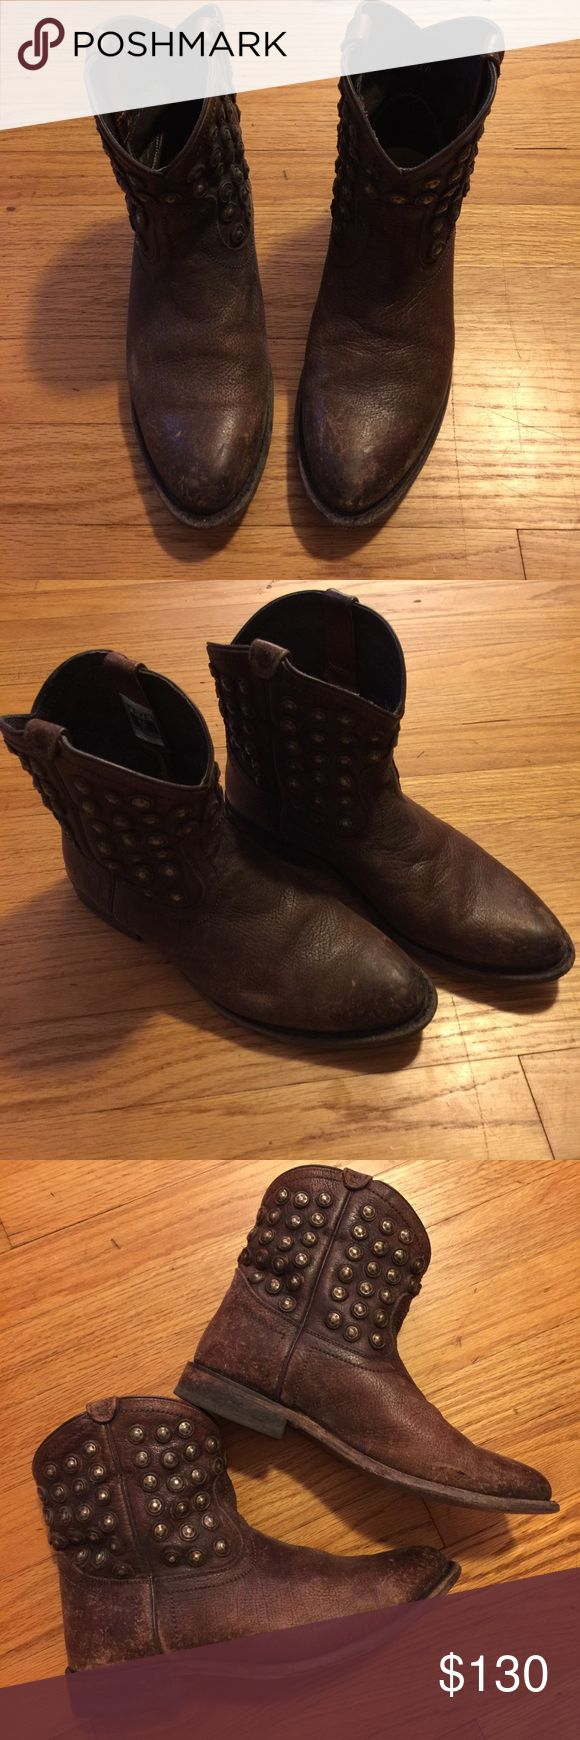 "Frye Wyatt Disk Short Boots In great condition.  Leather glazed for a vintage look.  No two are alike.  1 1/4"" heel.  6 1/2"" boot shaft. Frye Shoes Ankle Boots & Booties"